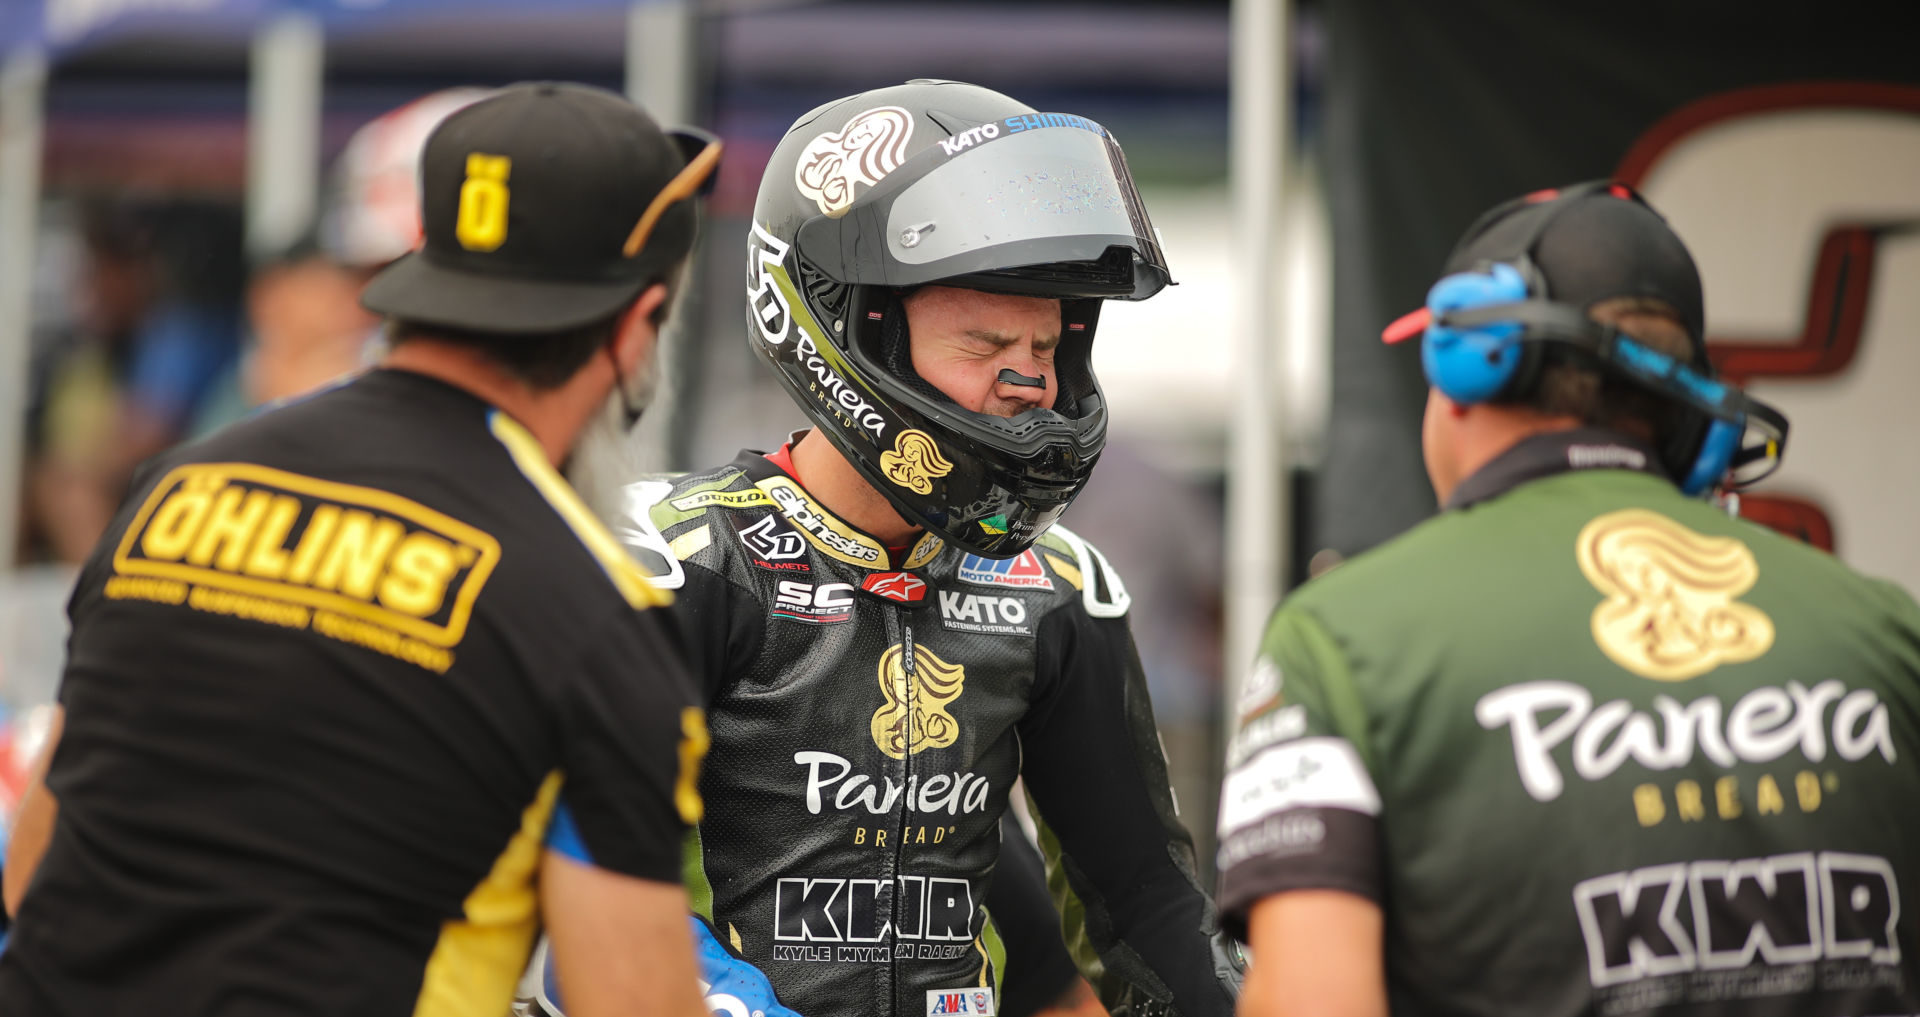 Kyle Wyman grimaces after riding his Panera Bread Ducati Superbike at Brainerd. Photo by Brian J. Nelson.